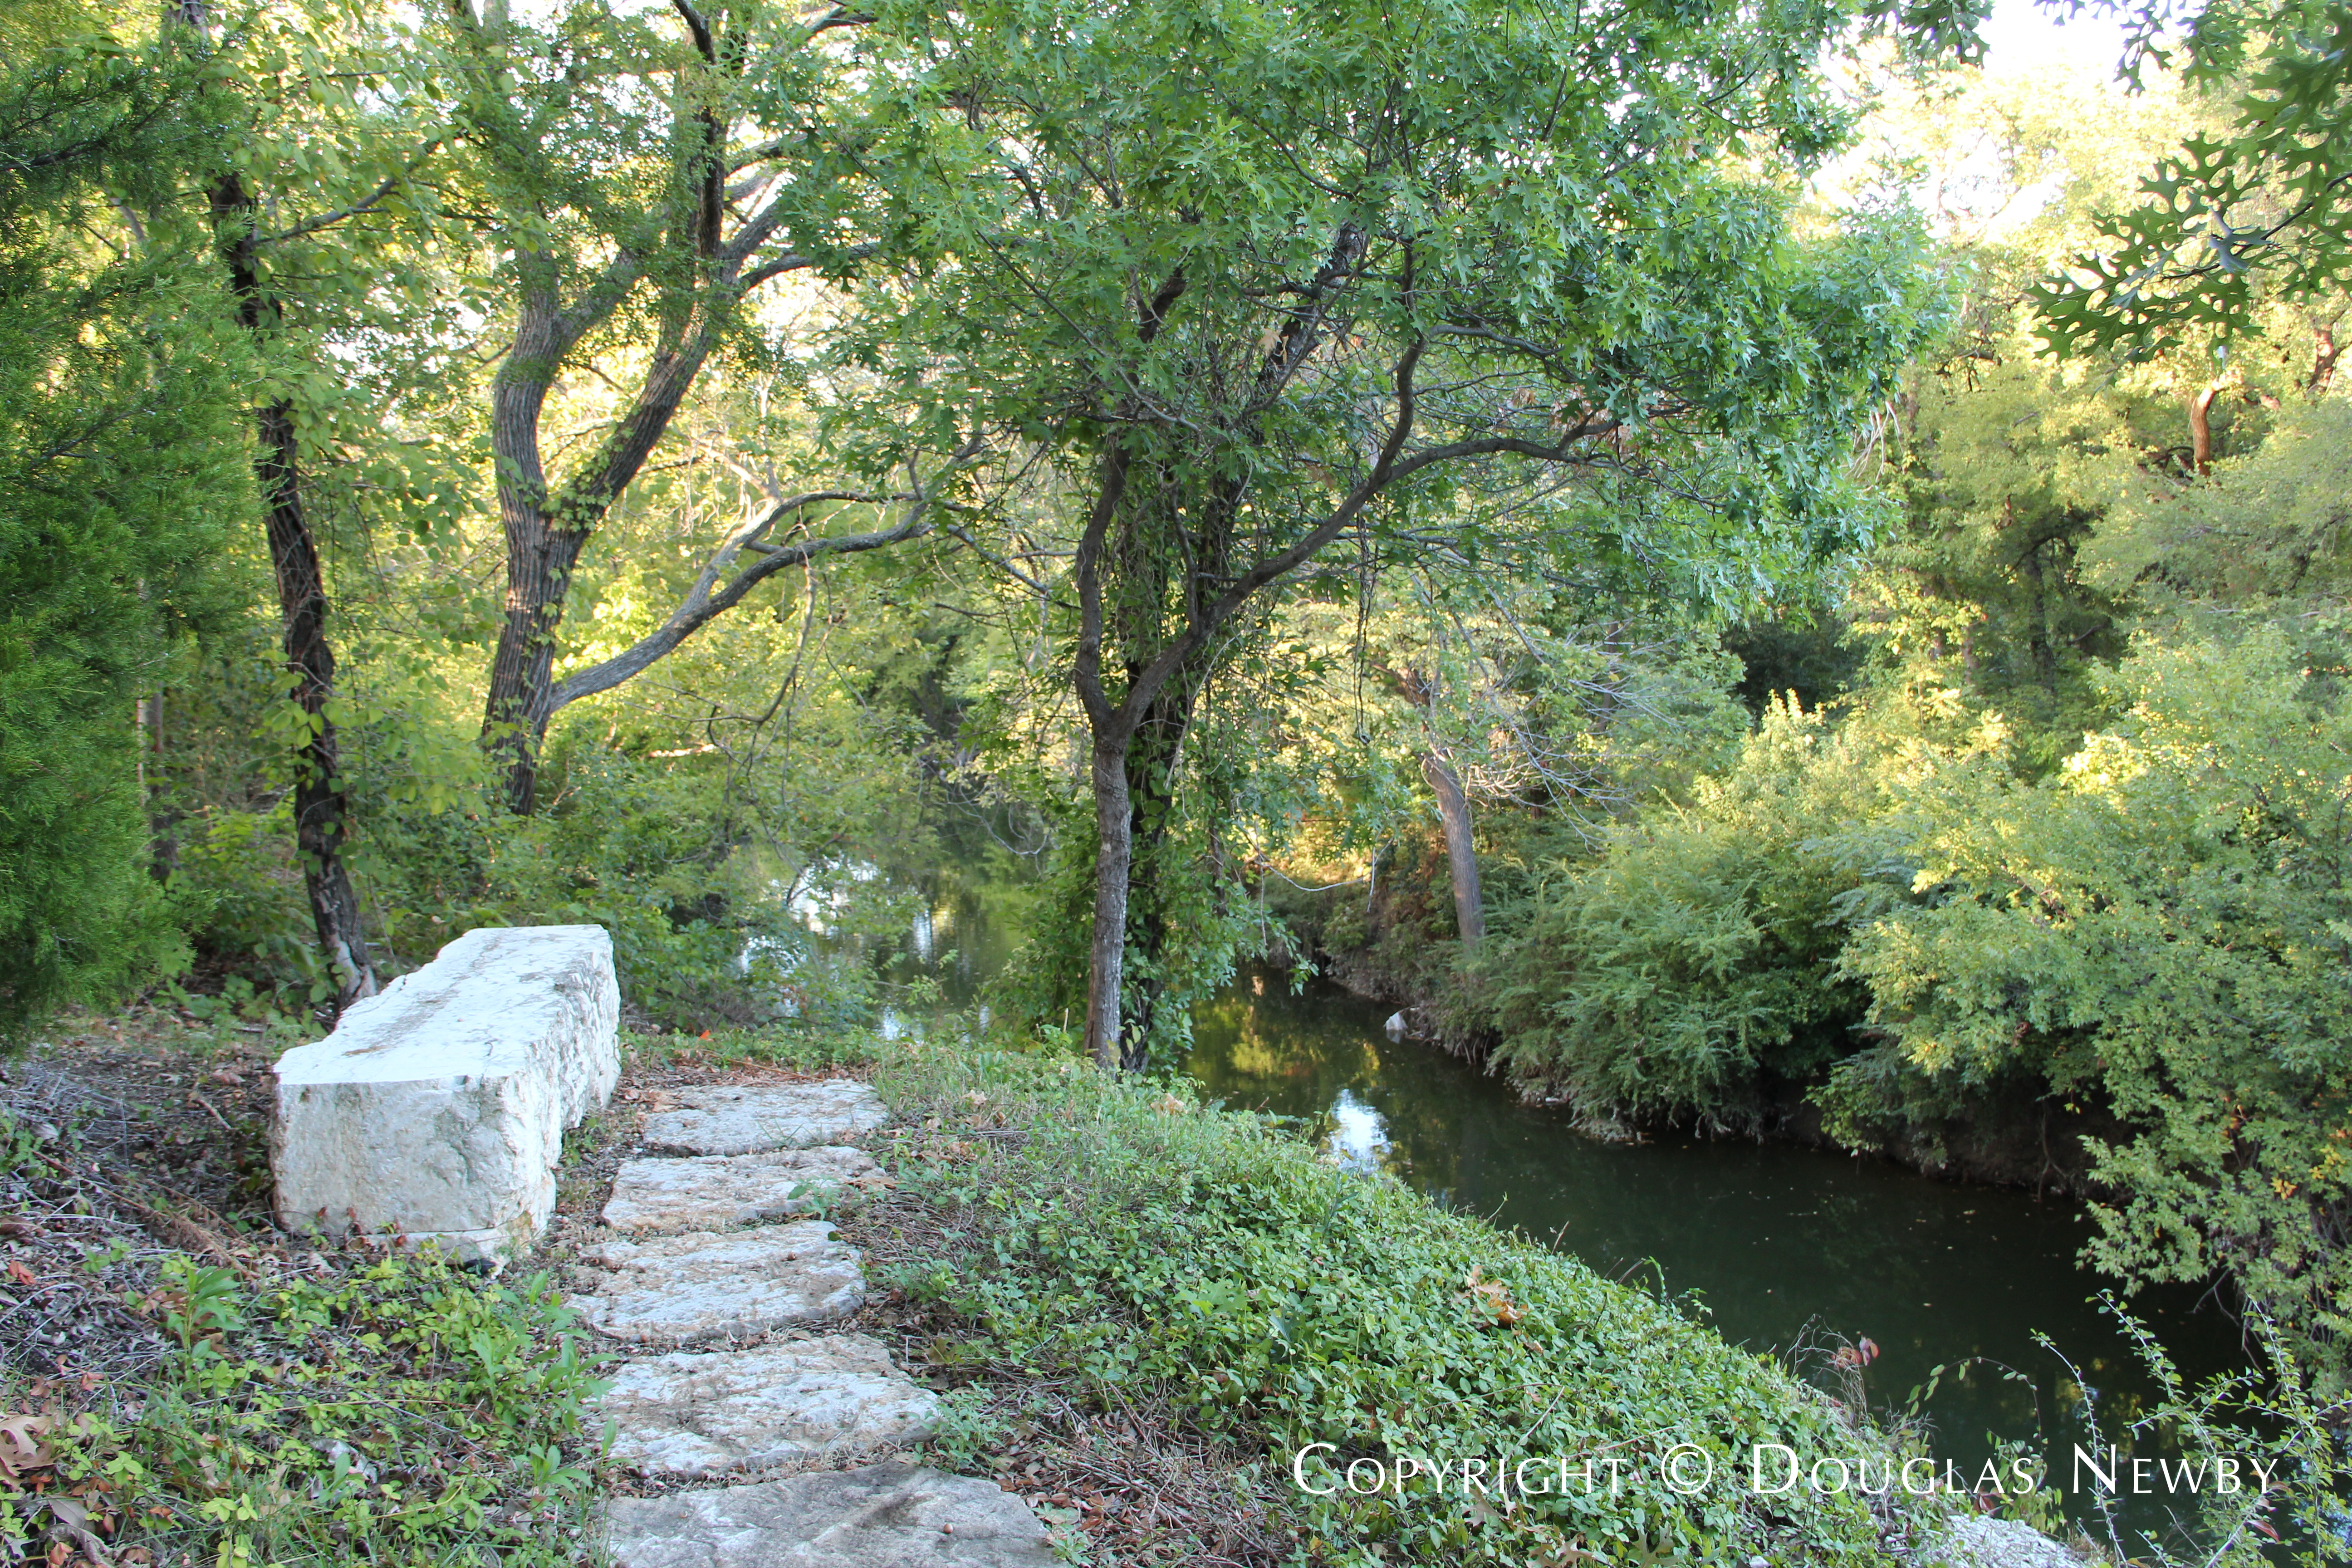 Stone Bench Set in Rugged Terrain Close to White Rock Creek on Boundary of the Glen Abbey Neighborhood